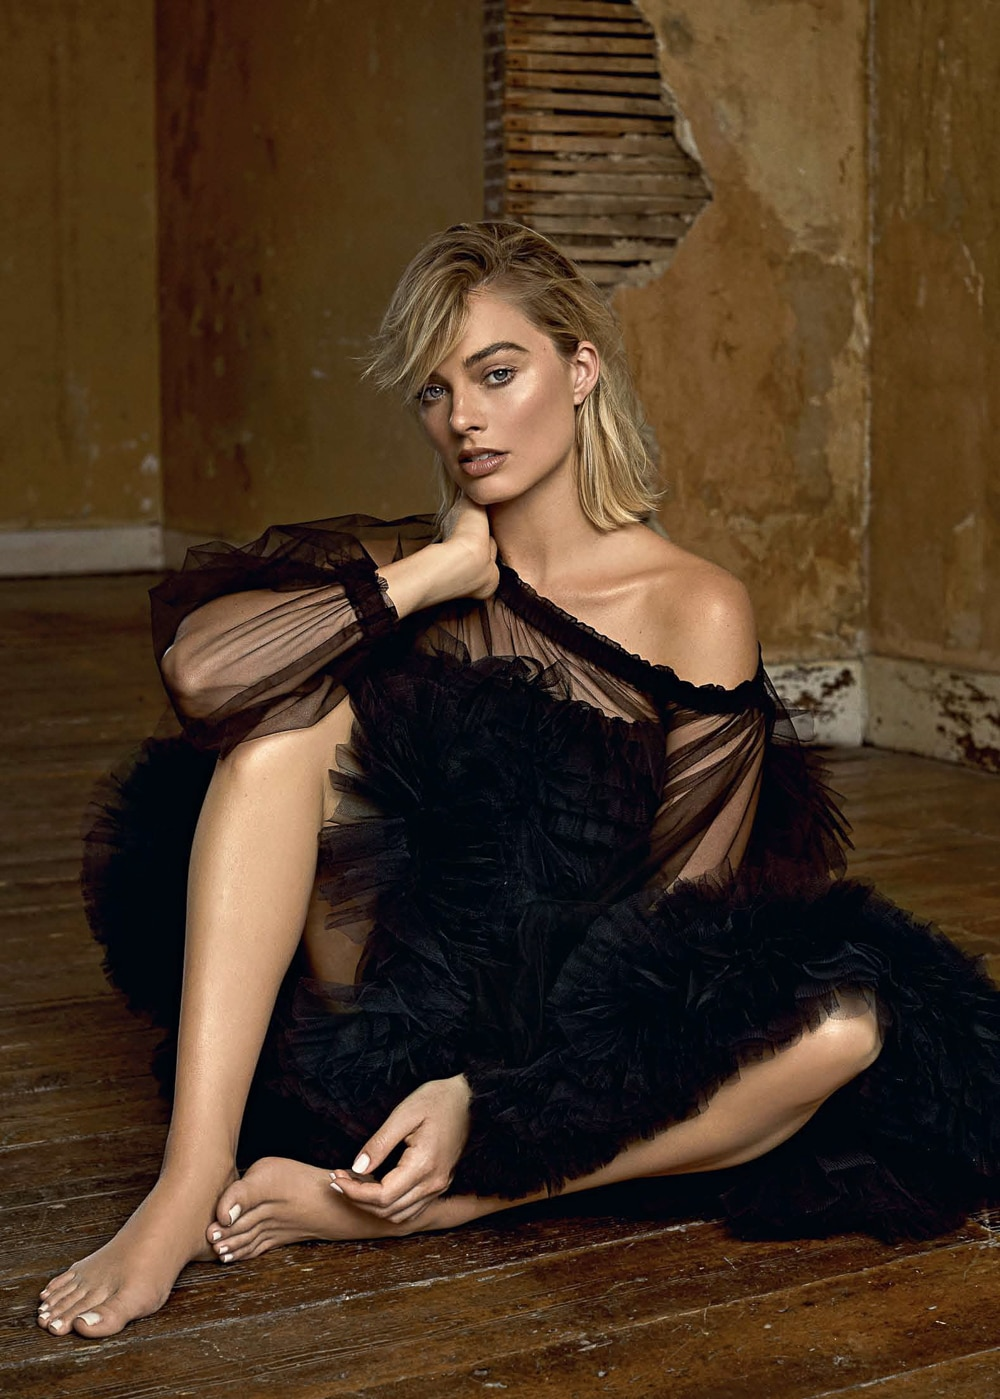 Margot-Robbie-Evening-Standard-Magazine-Max-Papendieck-6.jpg